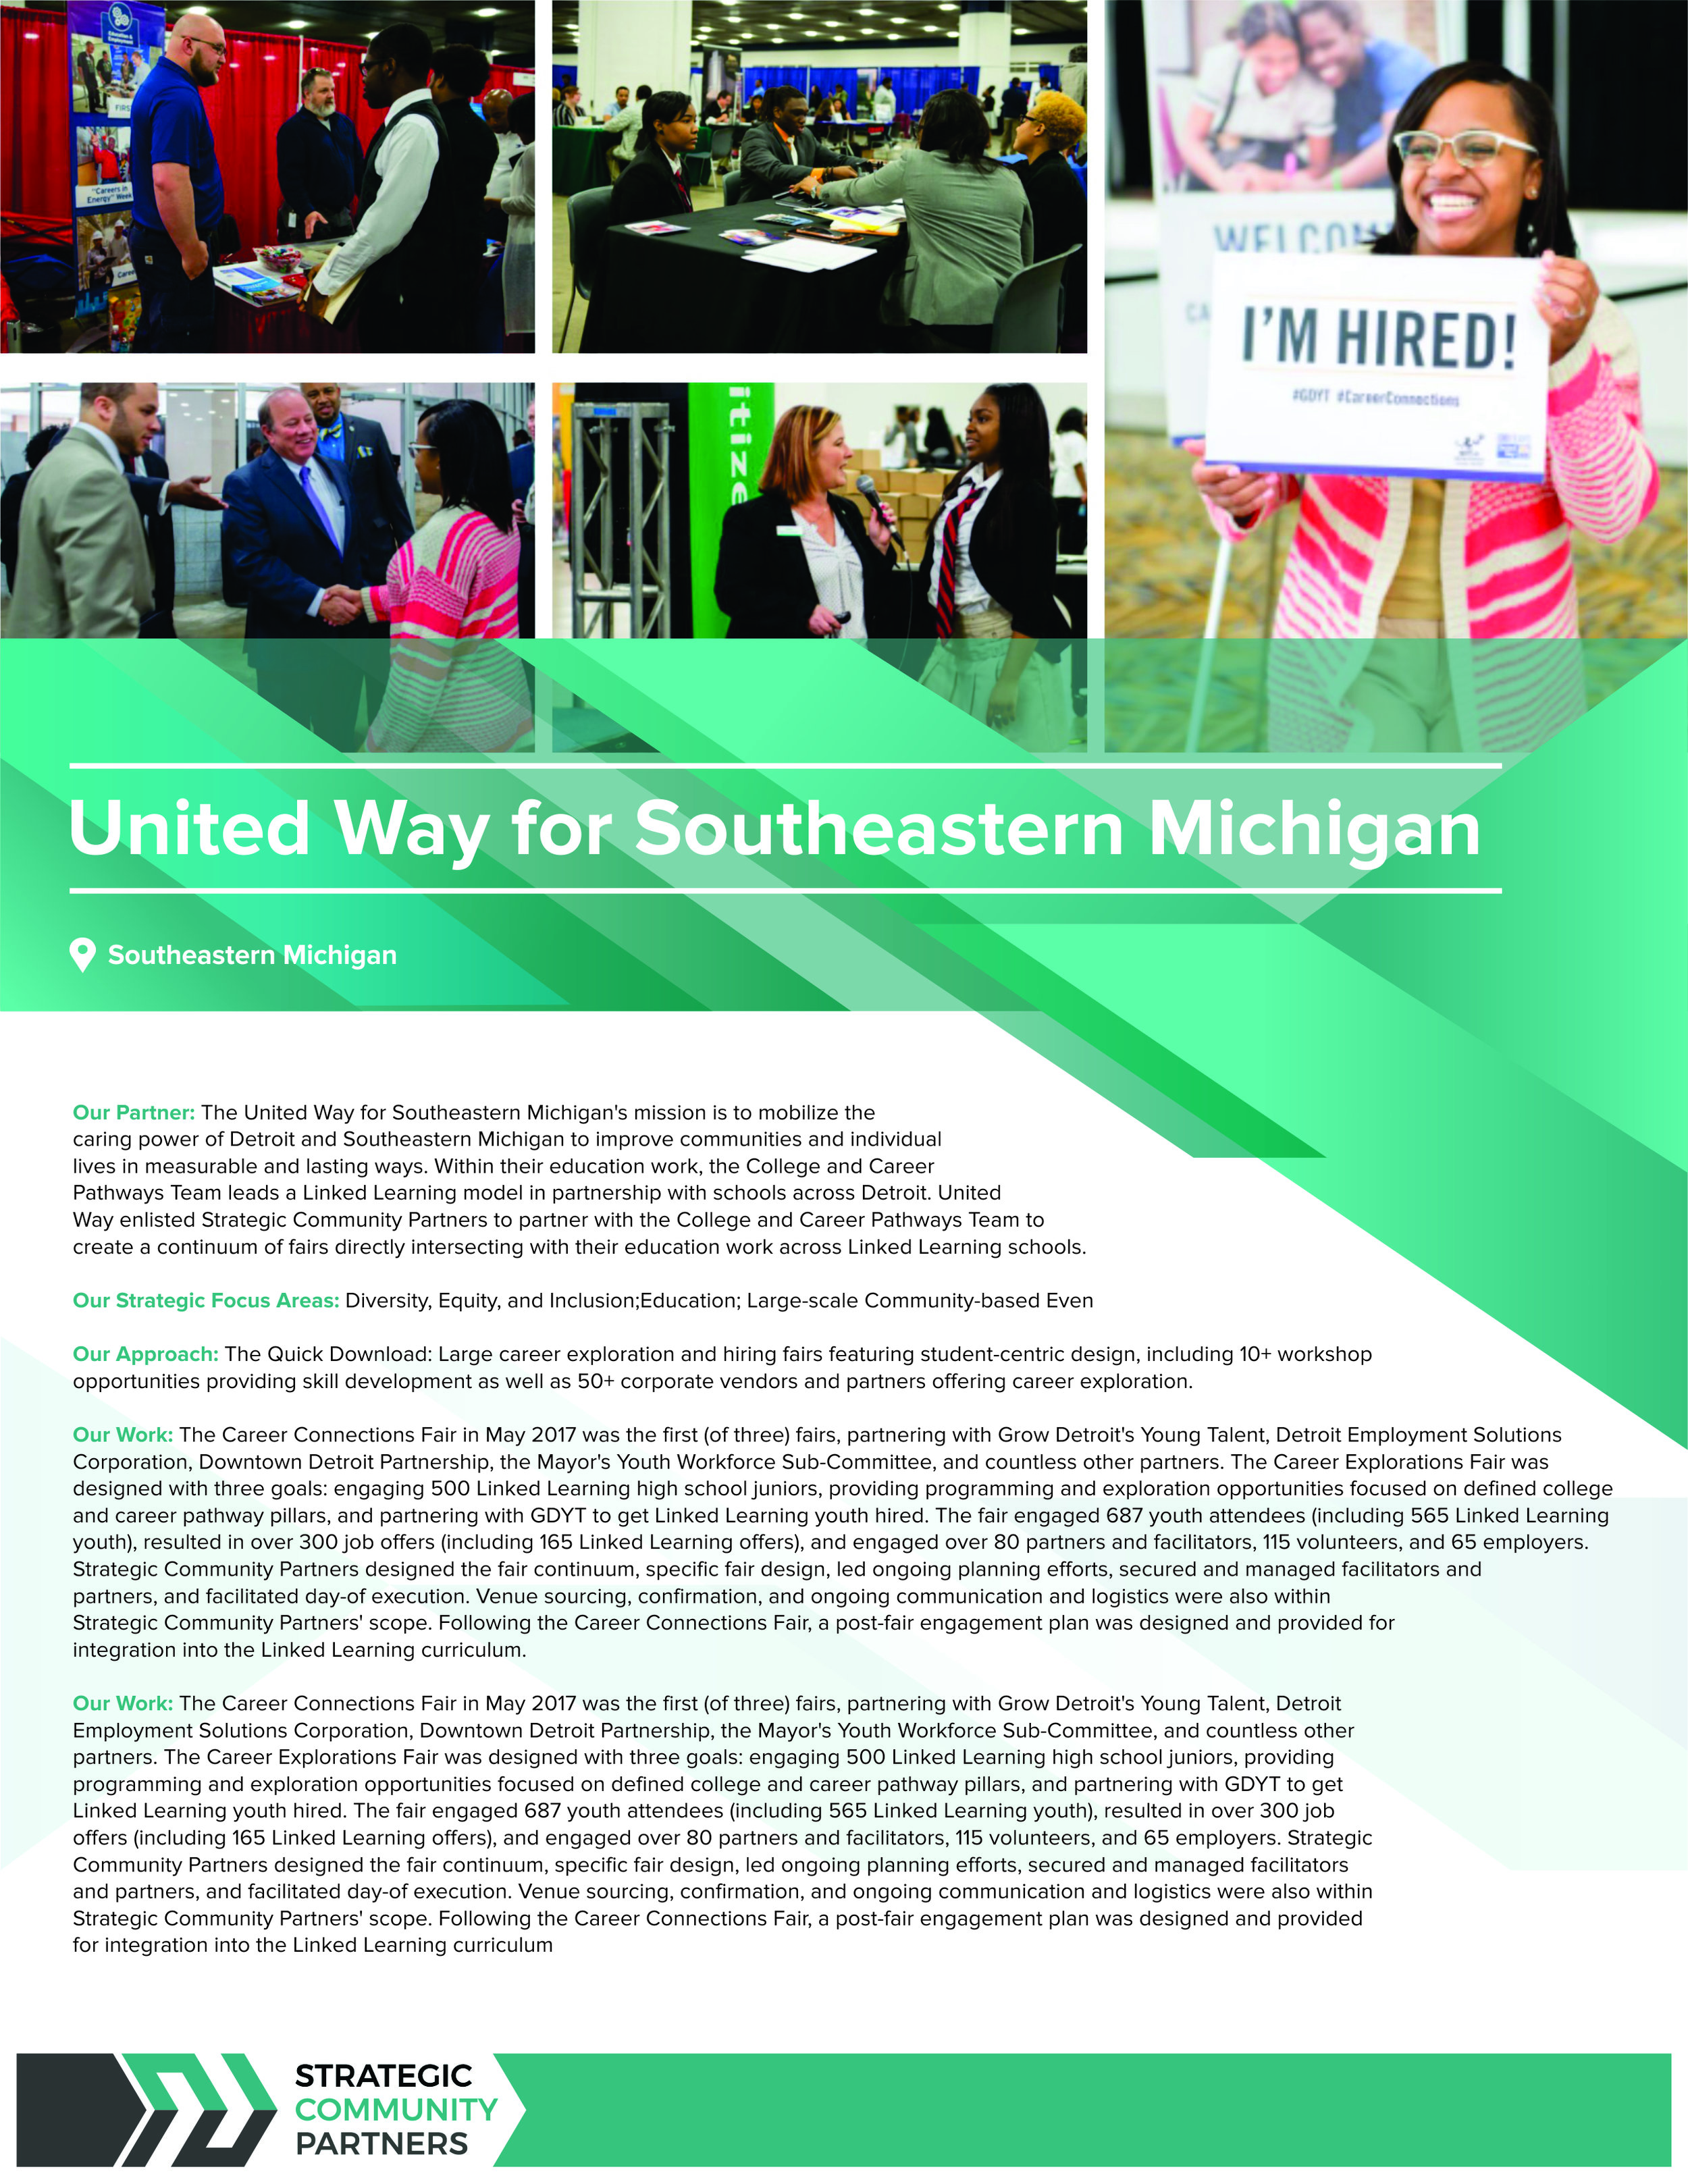 United Way for Southeastern Michigan